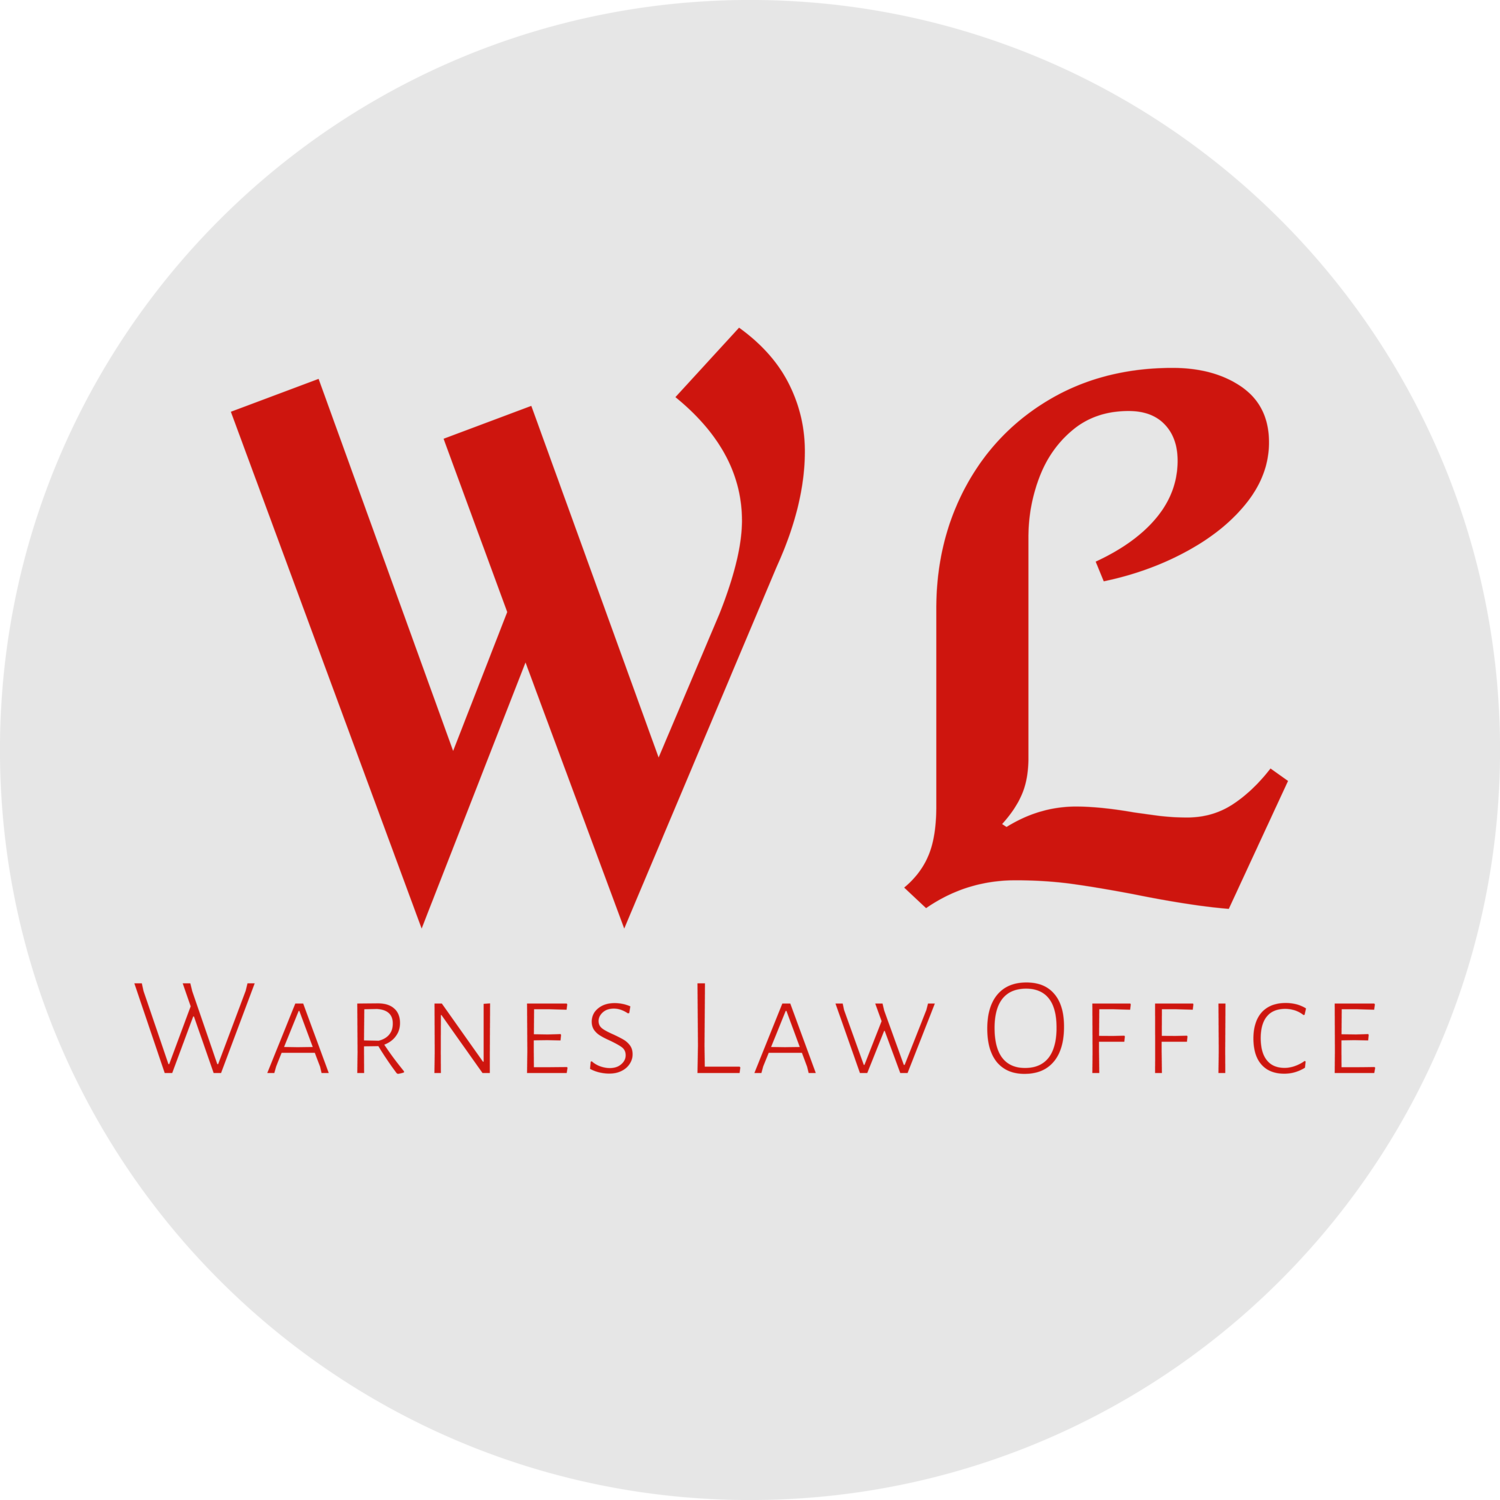 Warnes Law Office